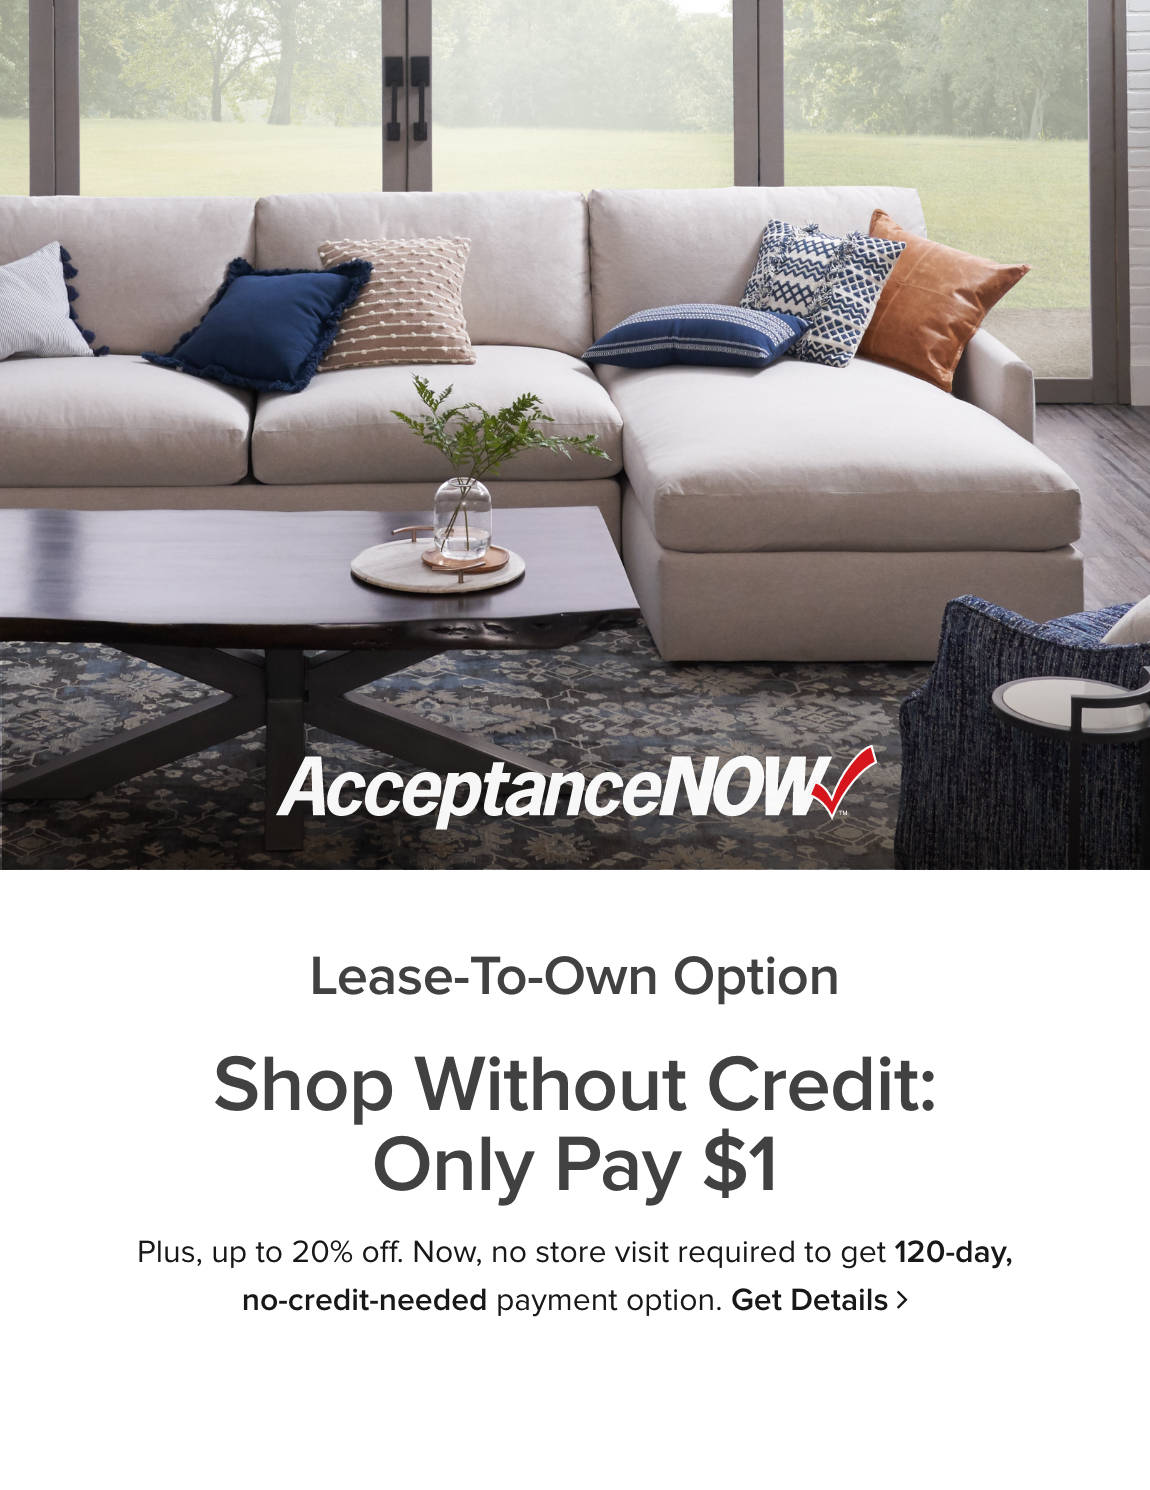 AcceptanceNOW: Lease-To-Own Option - Shop Without Credit: Only Pay $1 - Plus, up to 10% off. Now, no store visit required to get 120-day, no-credit-needed payment option. Get Details